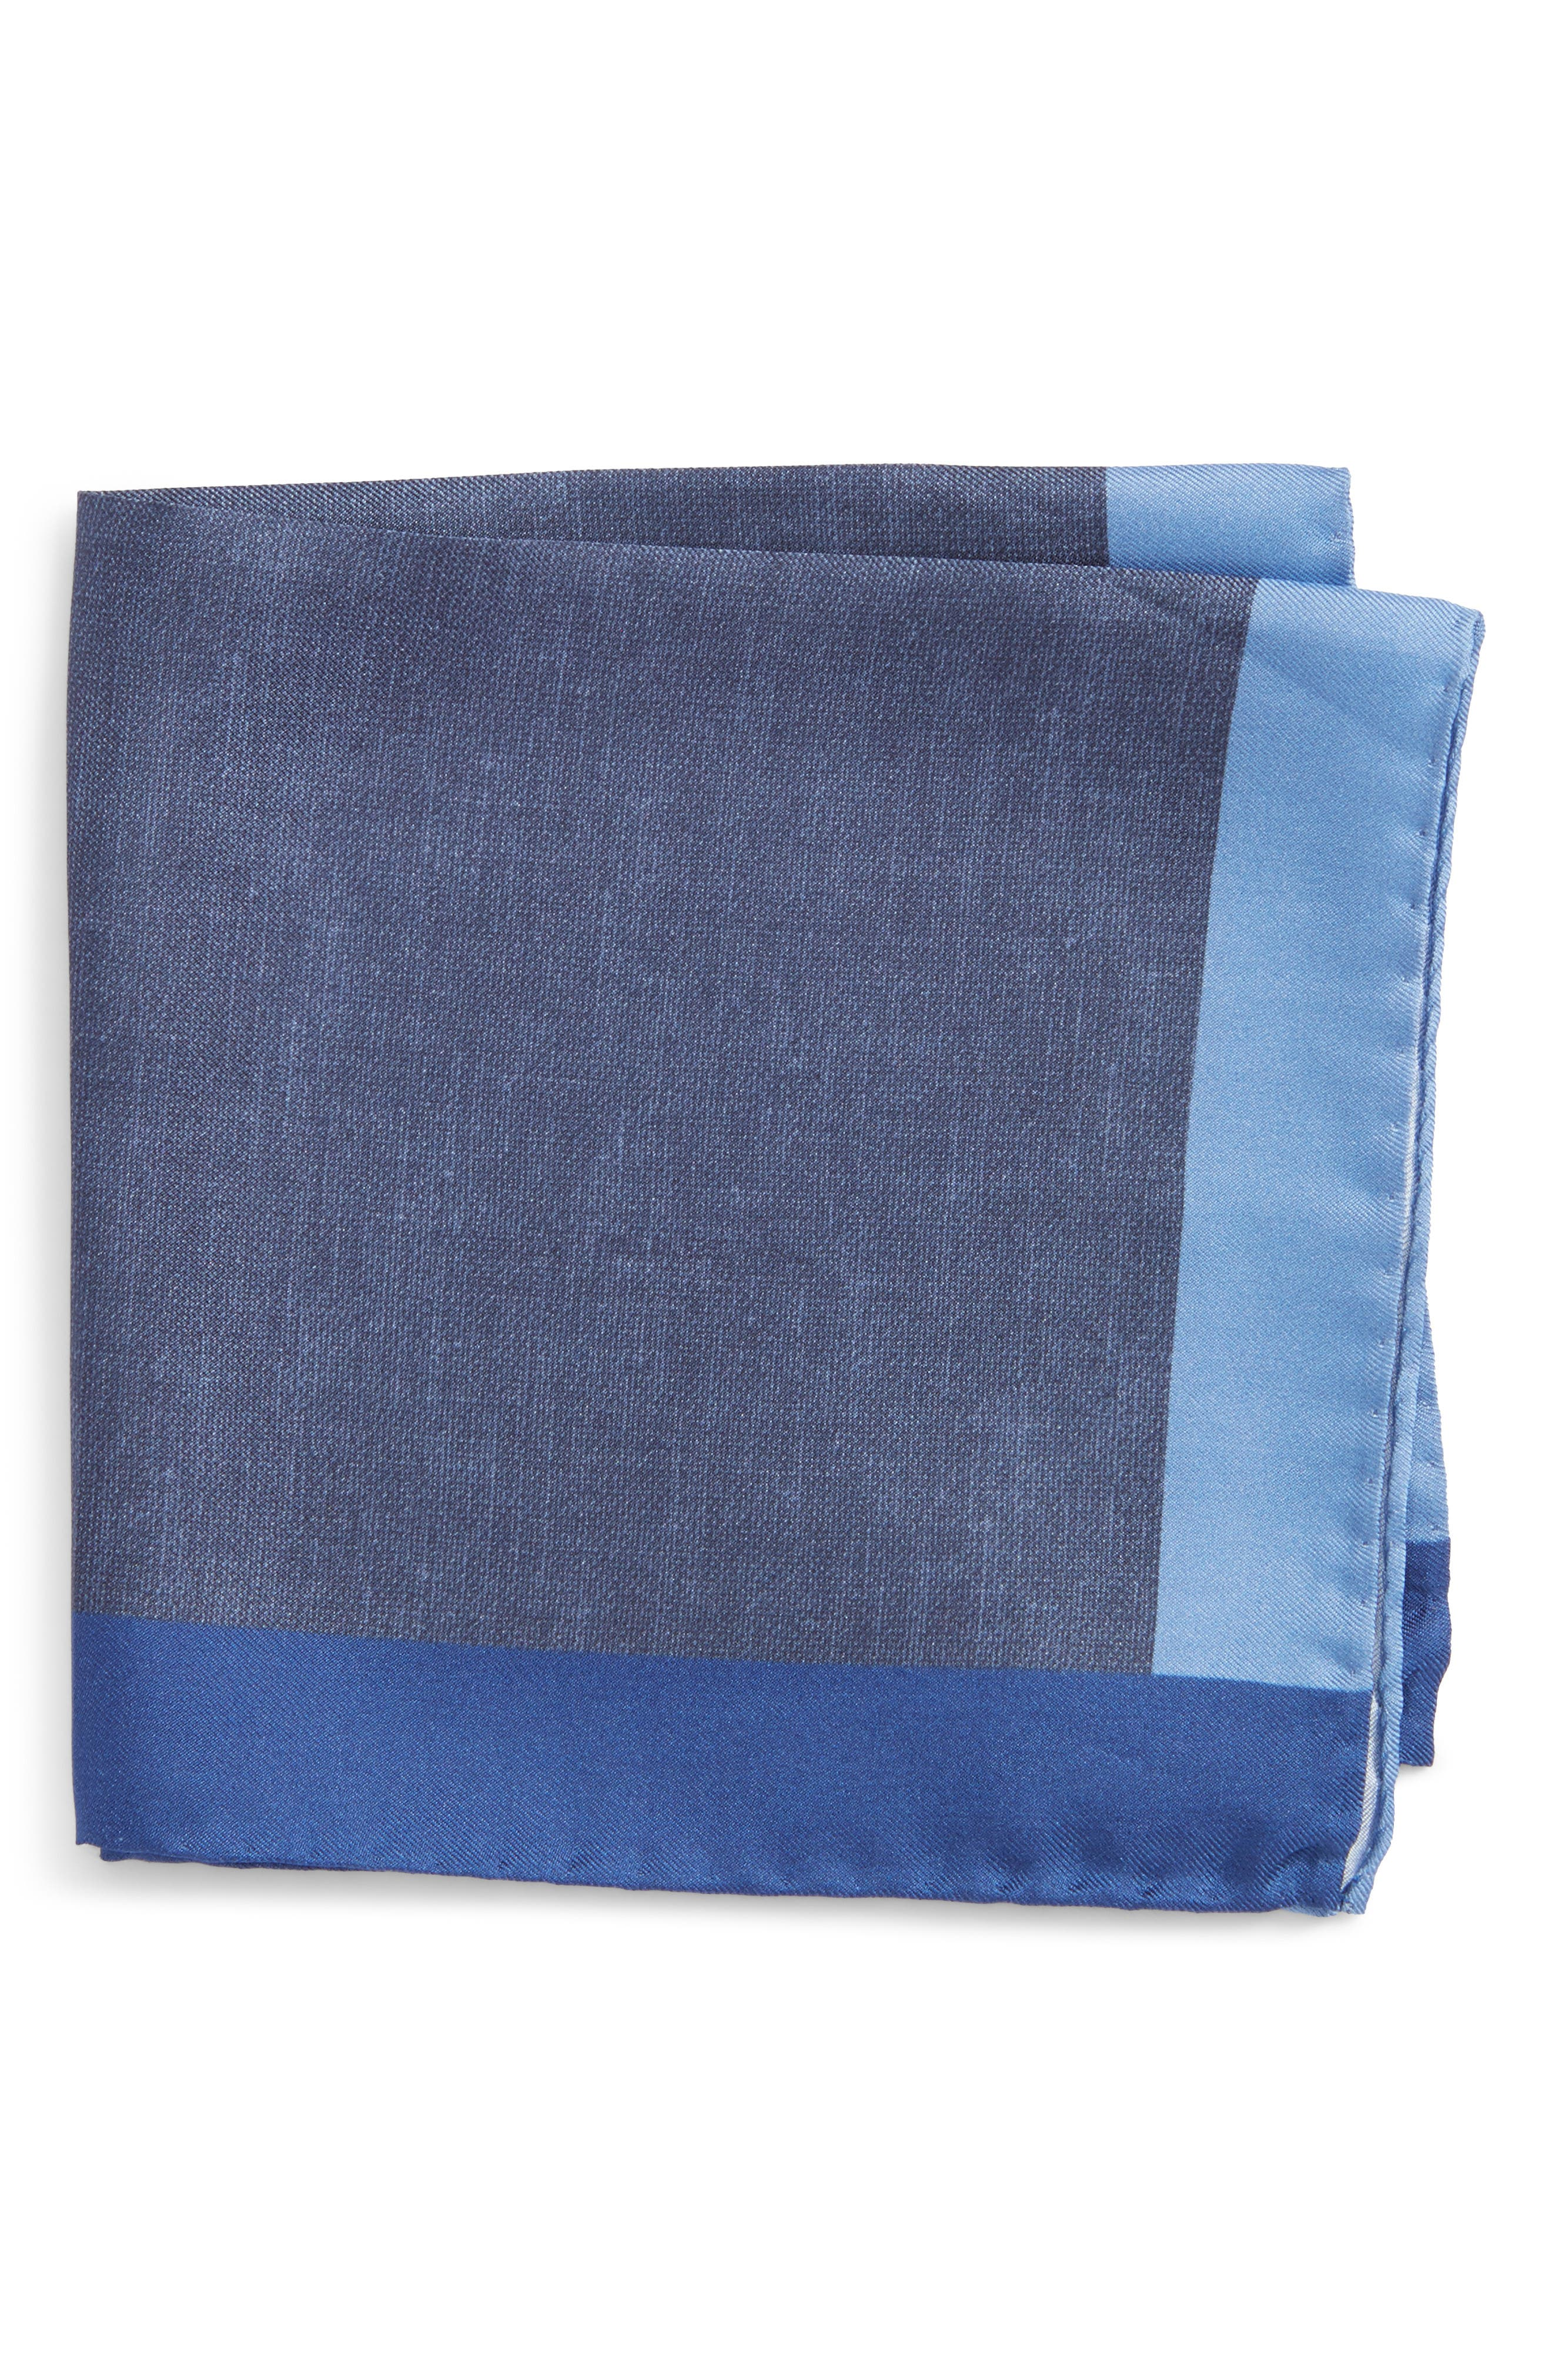 Nordstrom x BOSS Exclusive Silk Pocket Square,                         Main,                         color, 403